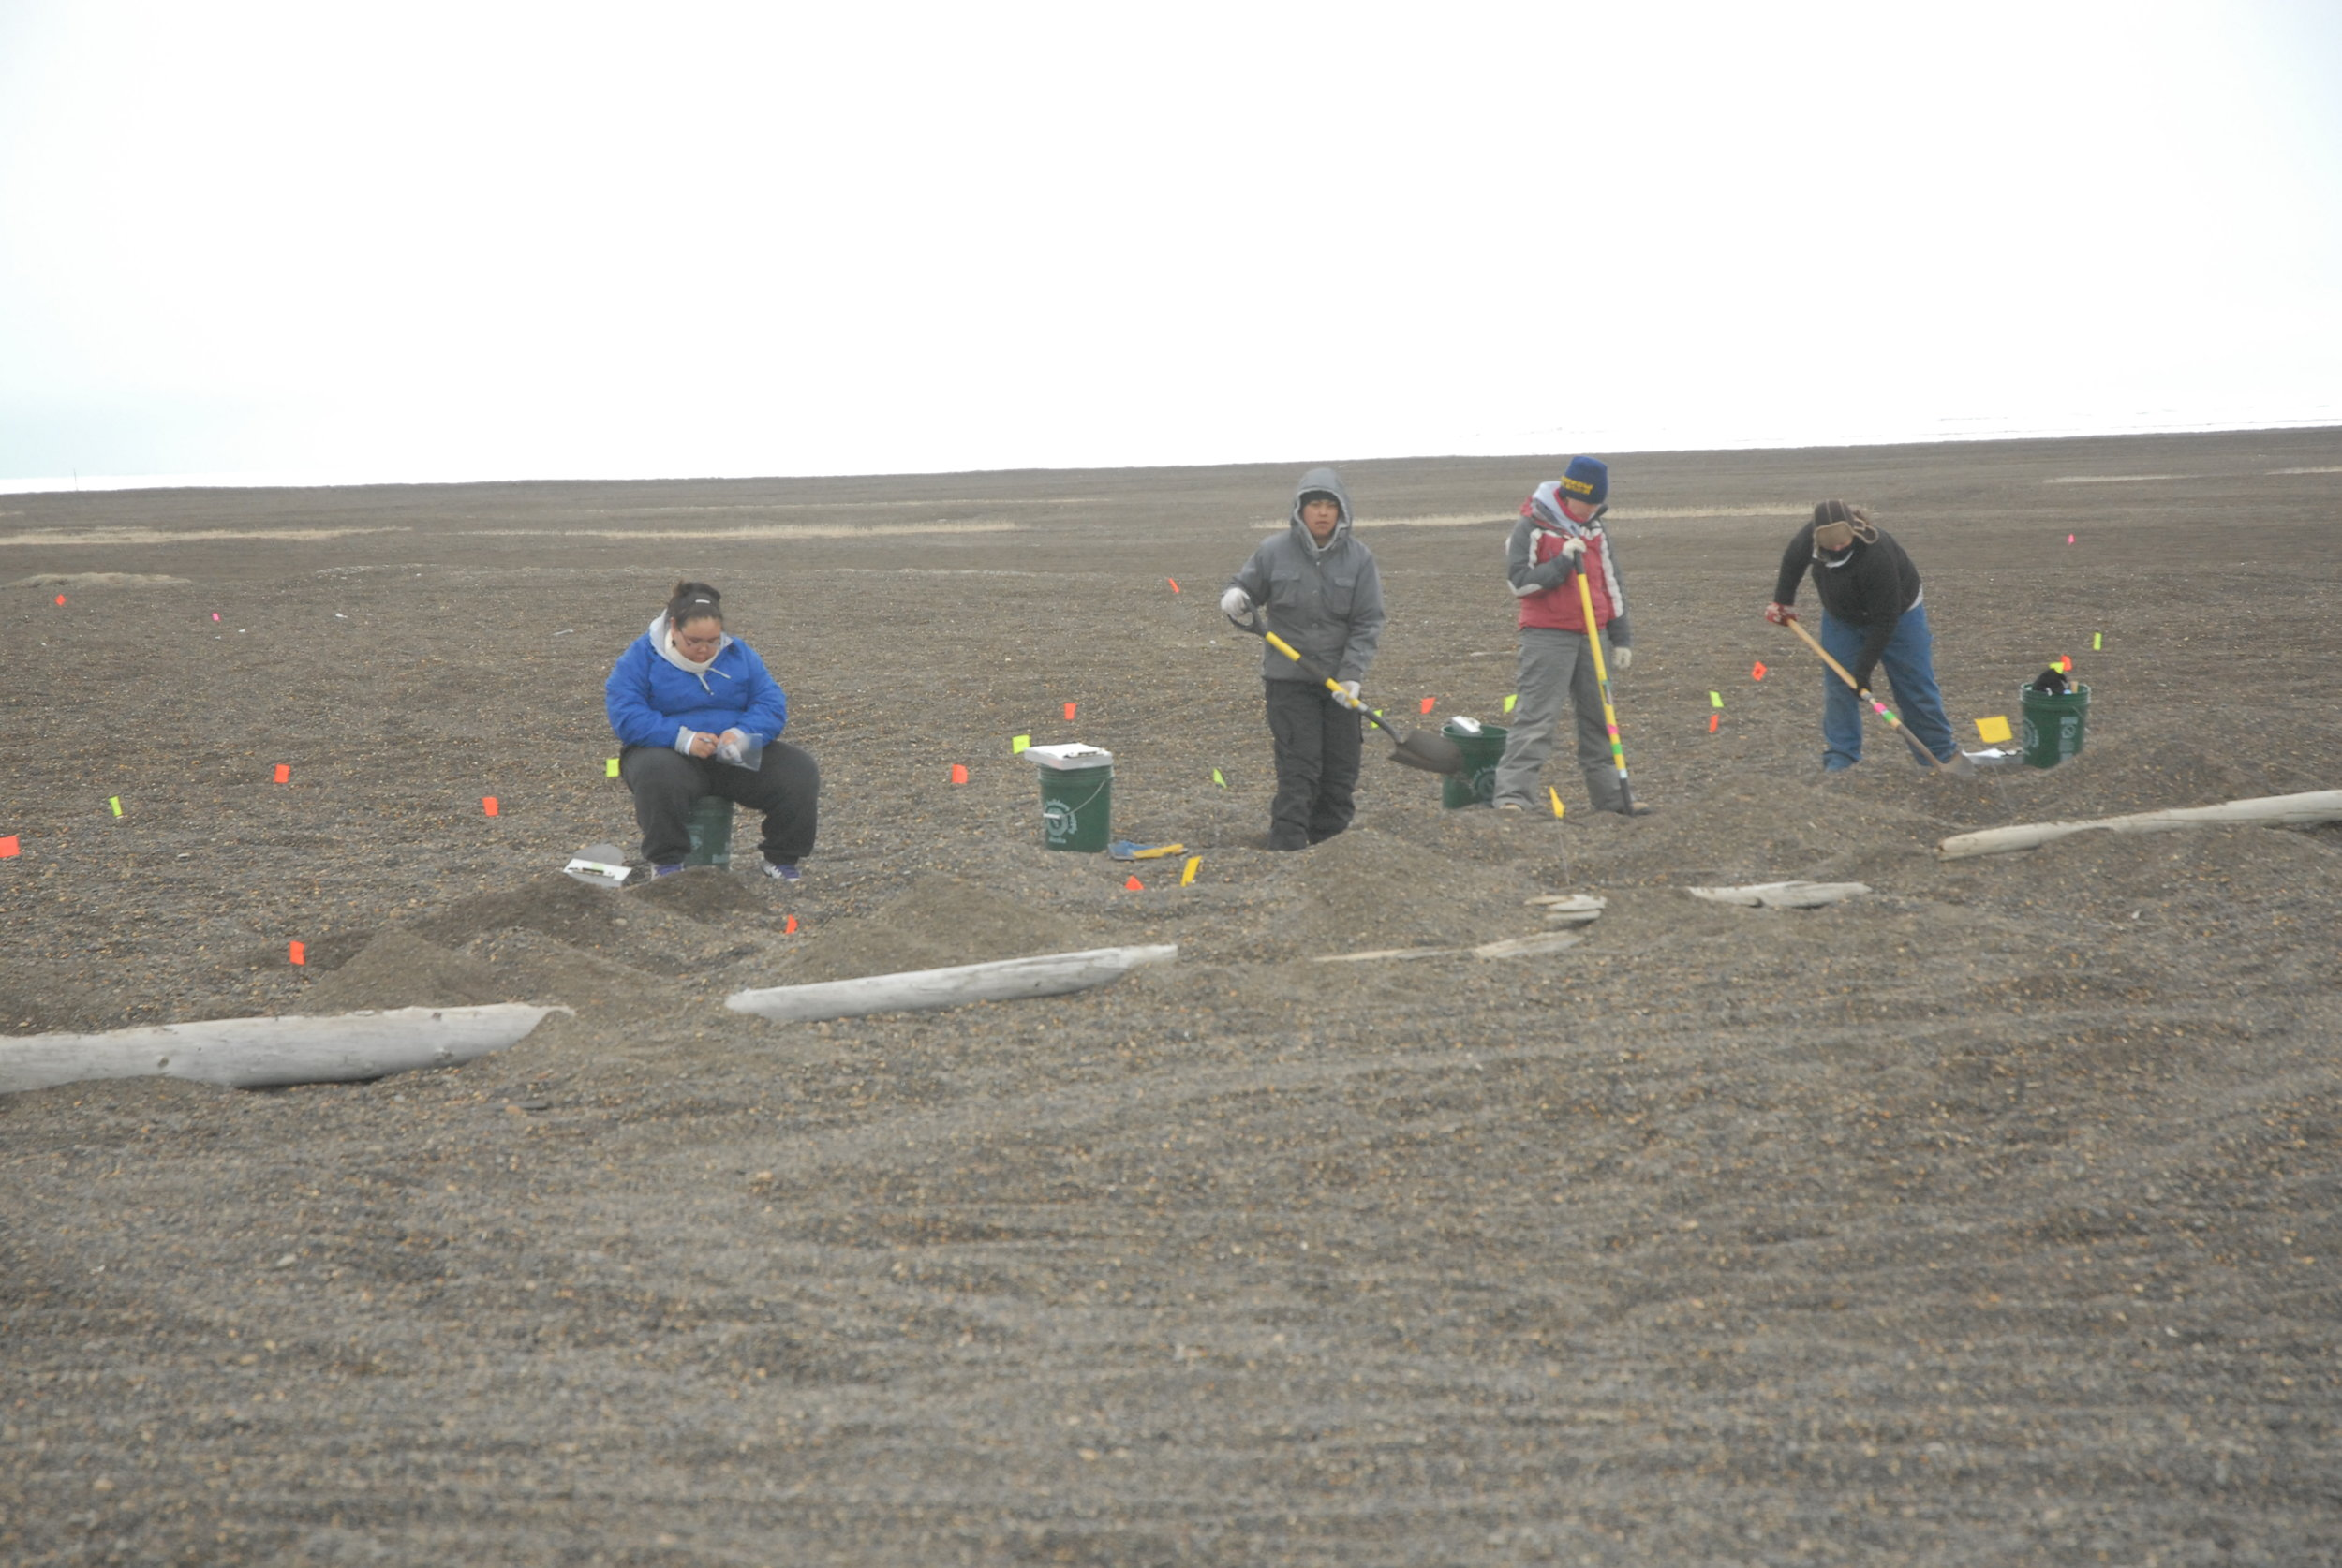 They're not digging for sand castles. North Slope high school students get the unique experiential educational experience of working on a professional excavation team at the Nuvuk dig site.